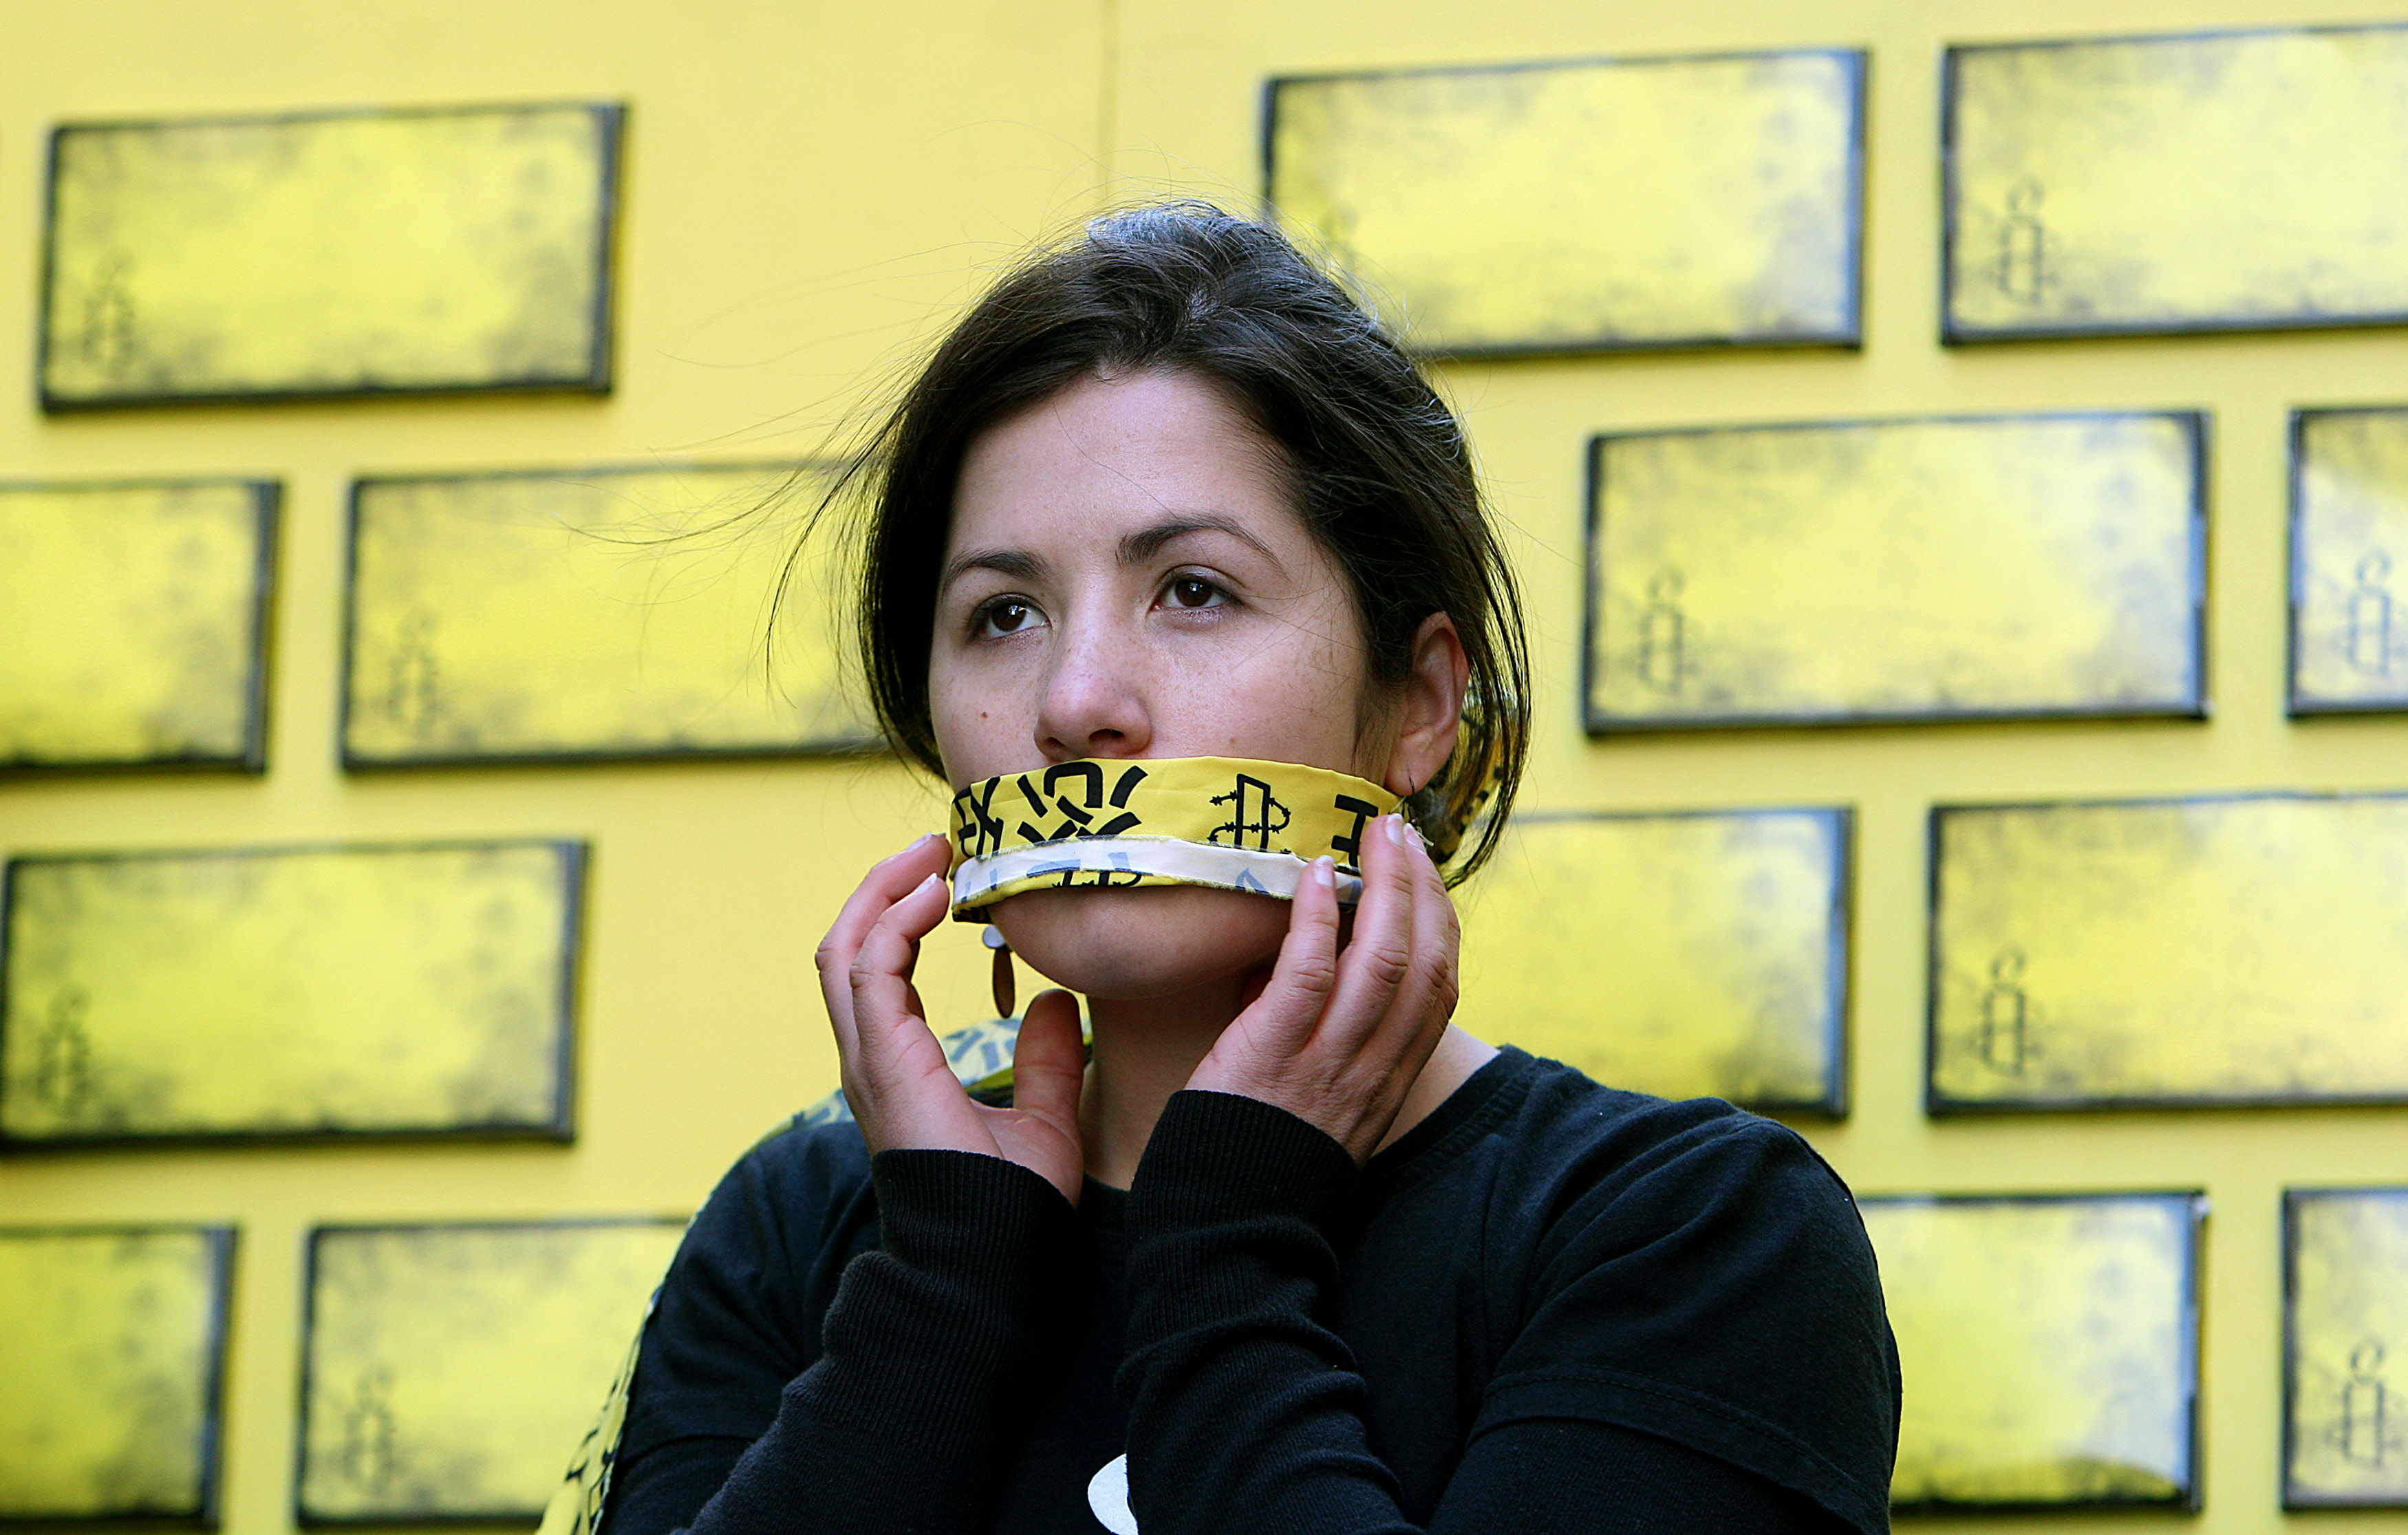 An Amnesty International member covers her mouth during a protest in Sydney against Internet censorship in China.